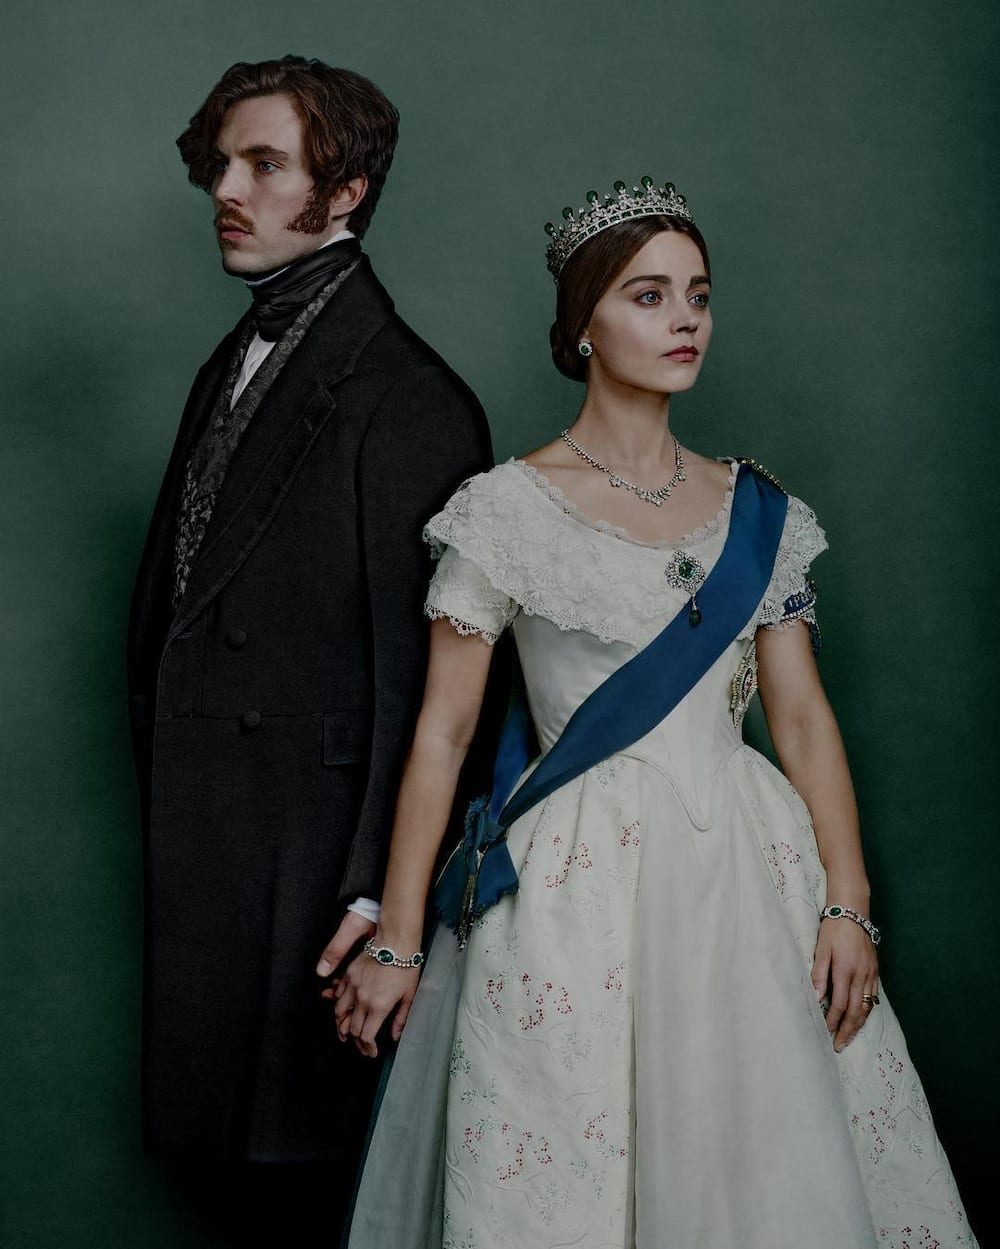 Jenna Coleman movies and TV shows